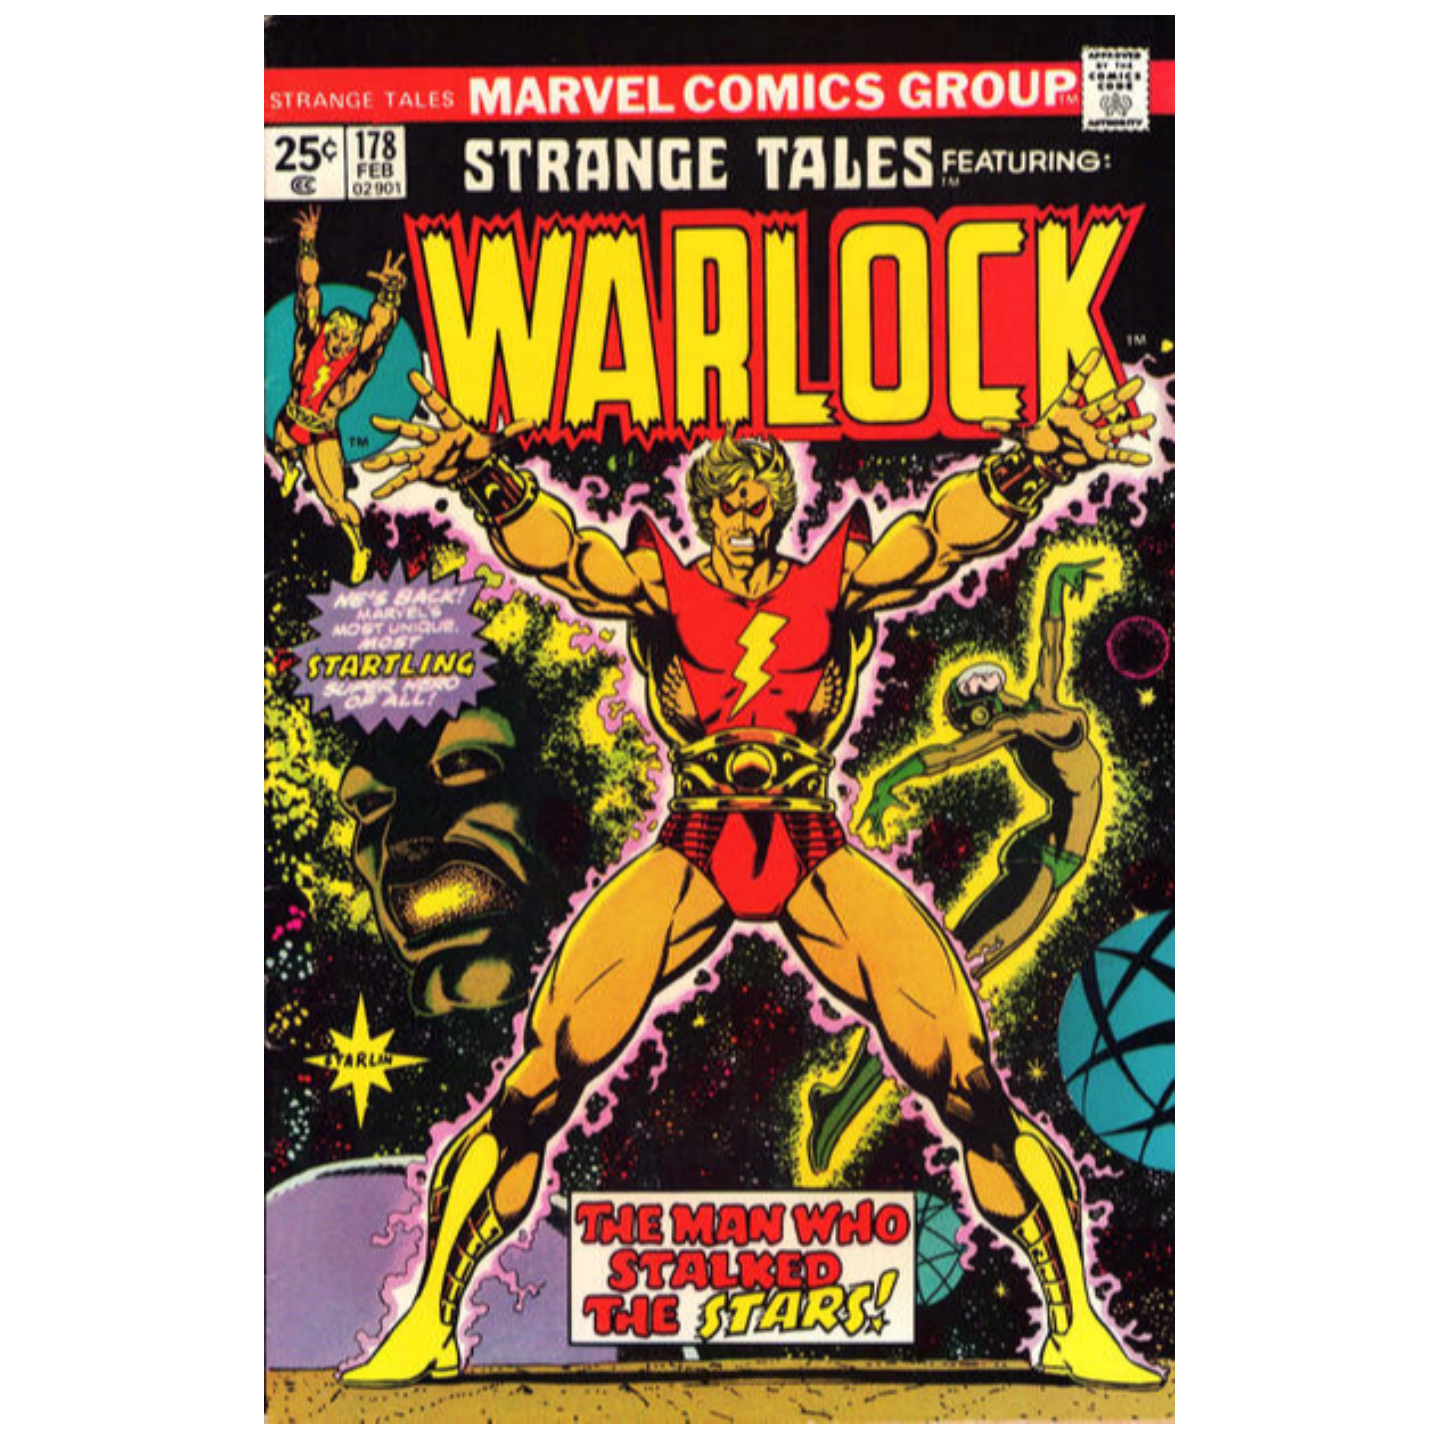 STRANGE TALES FEATURING WARLOCK 178 KEY ISSUE